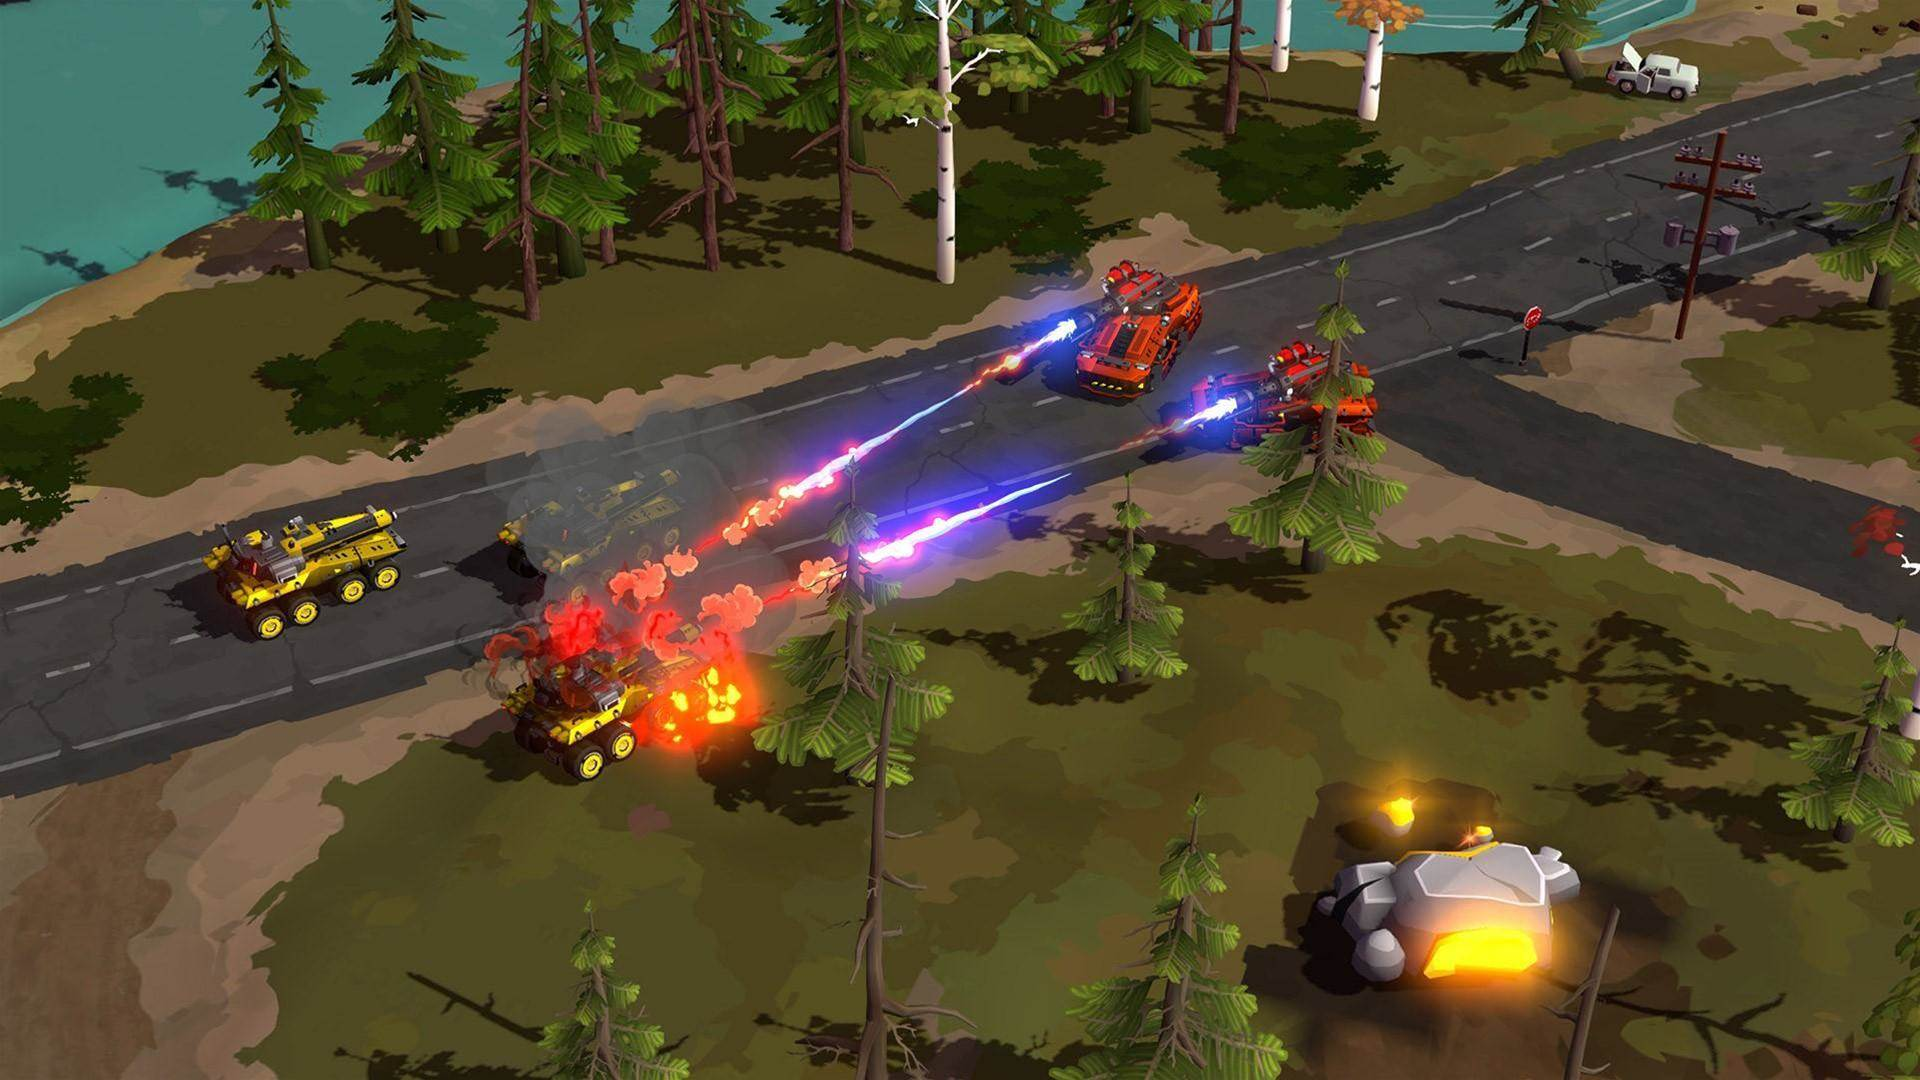 Command and conquer these Forged Battalion screens